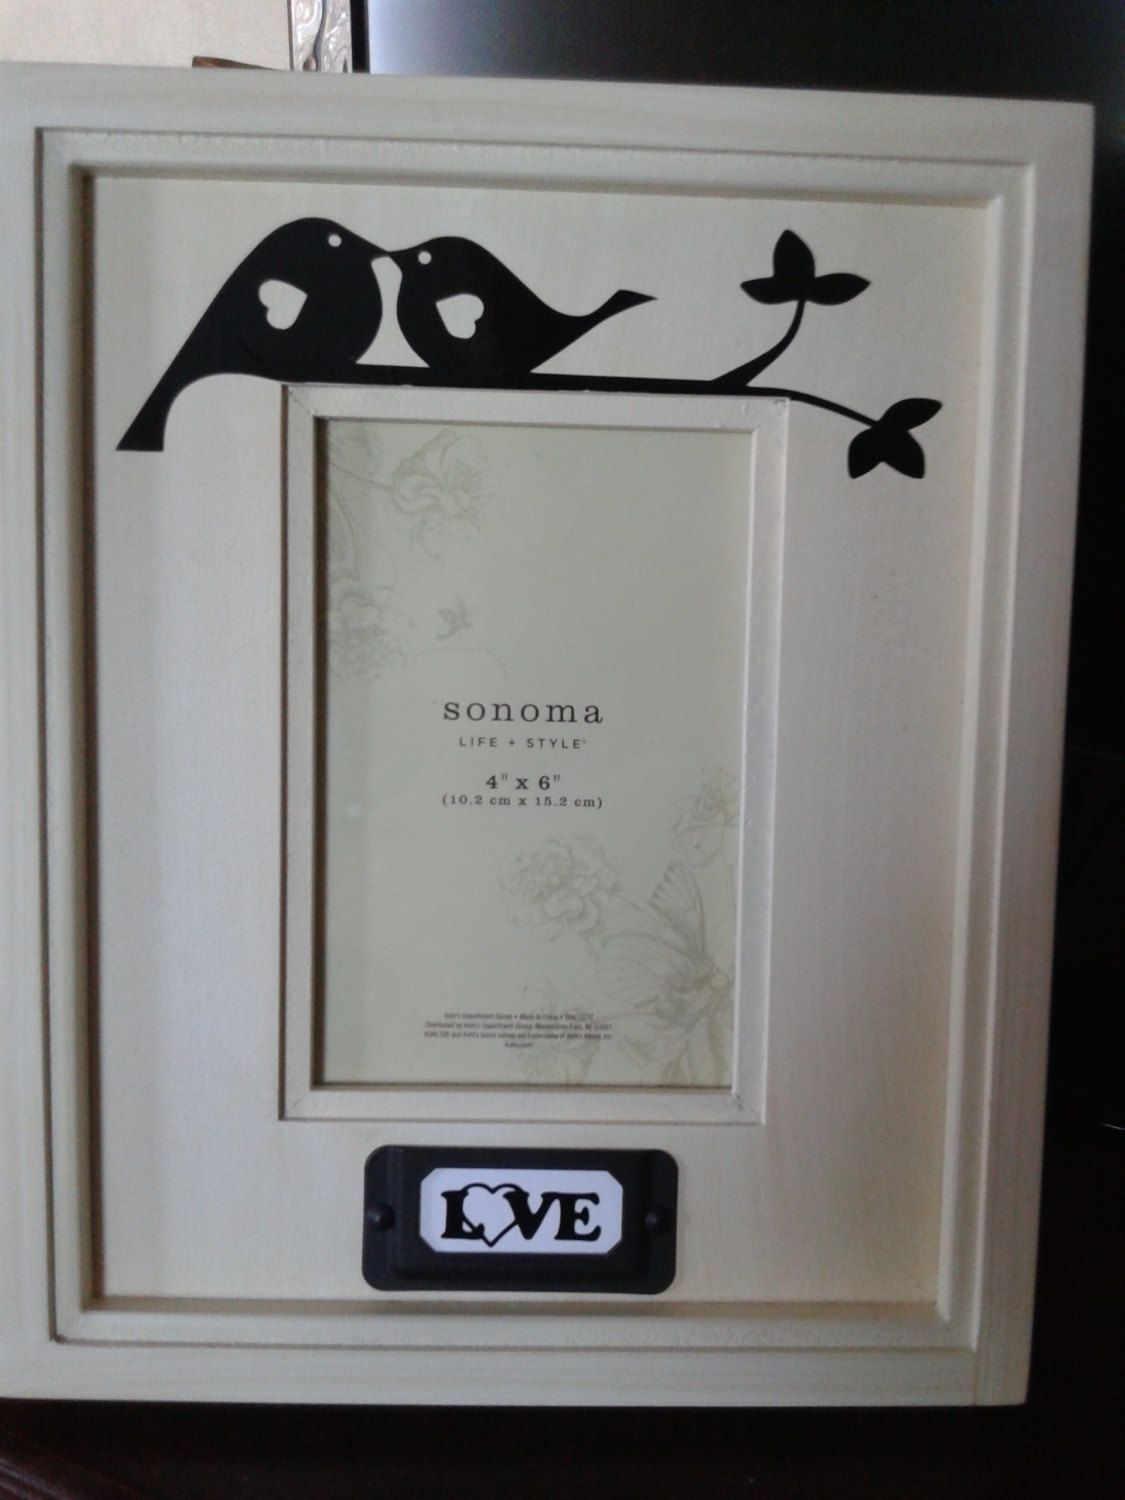 4x6 Sonoma Picture Frame from Kohls, Love Birds and Tree Branch ...